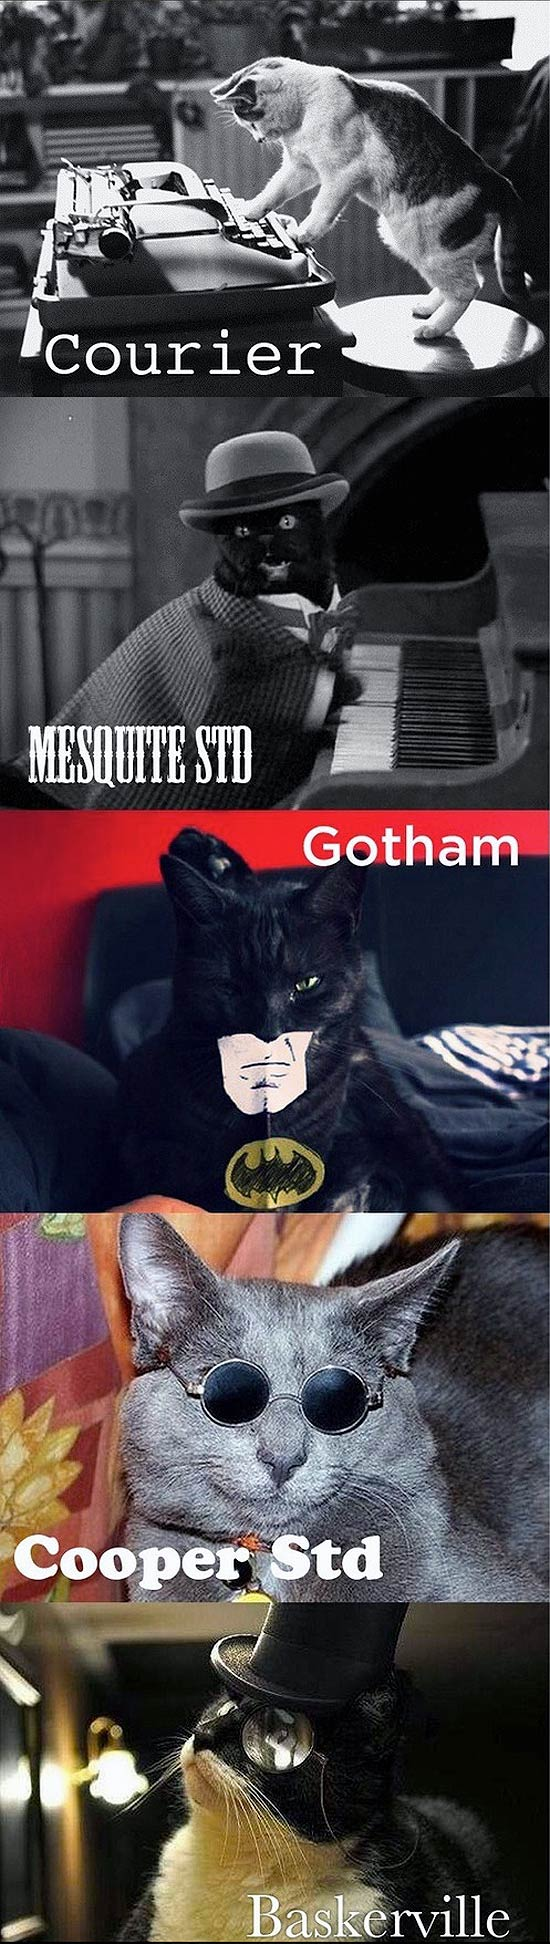 Chats et typographies : Courier, Gotham, Cooper, ...